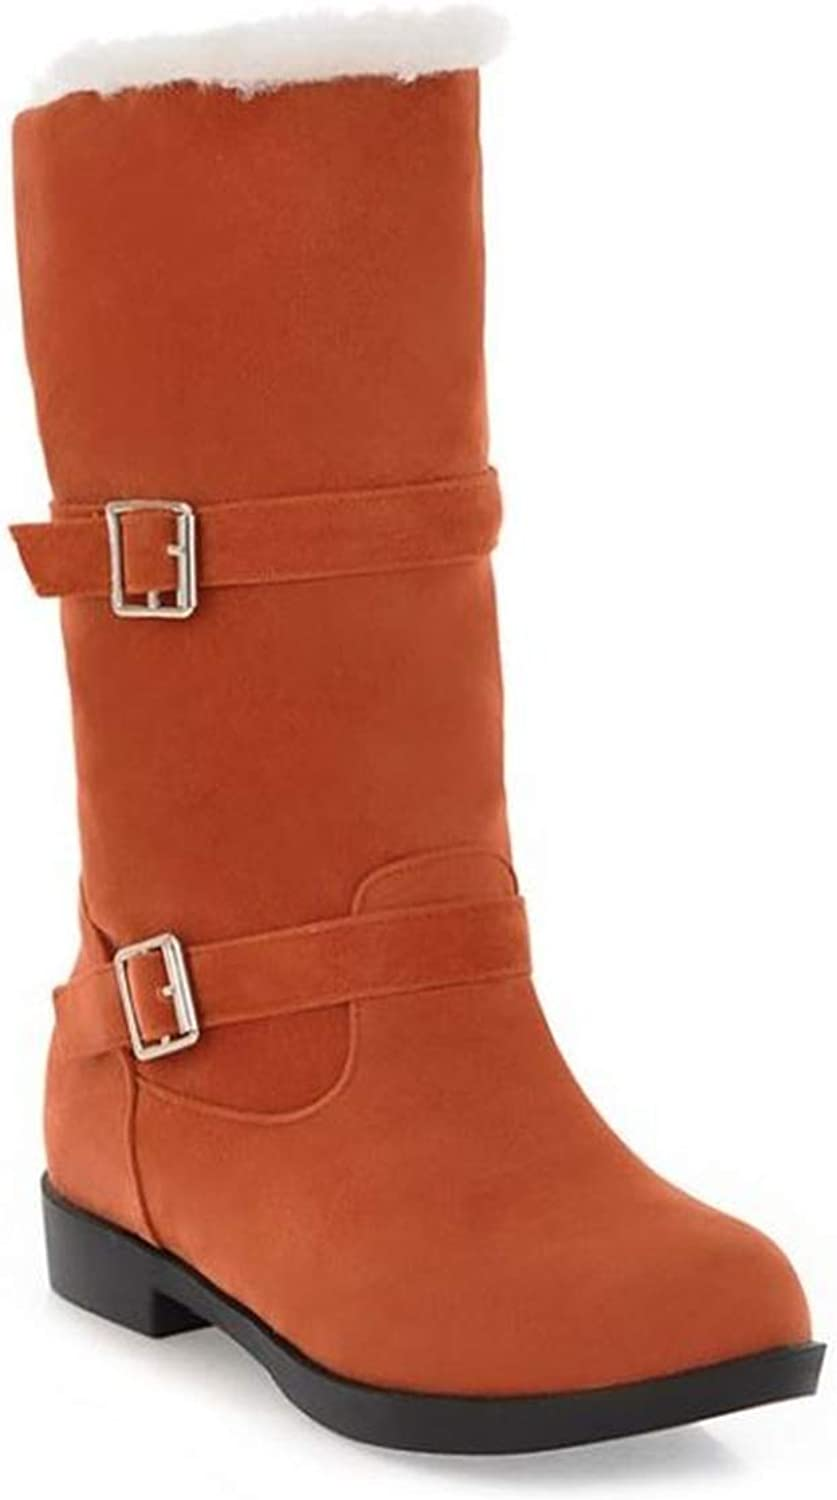 Believed Women's Knee High Winter Boots with Fur Lined Collar and Interior Warm shoes